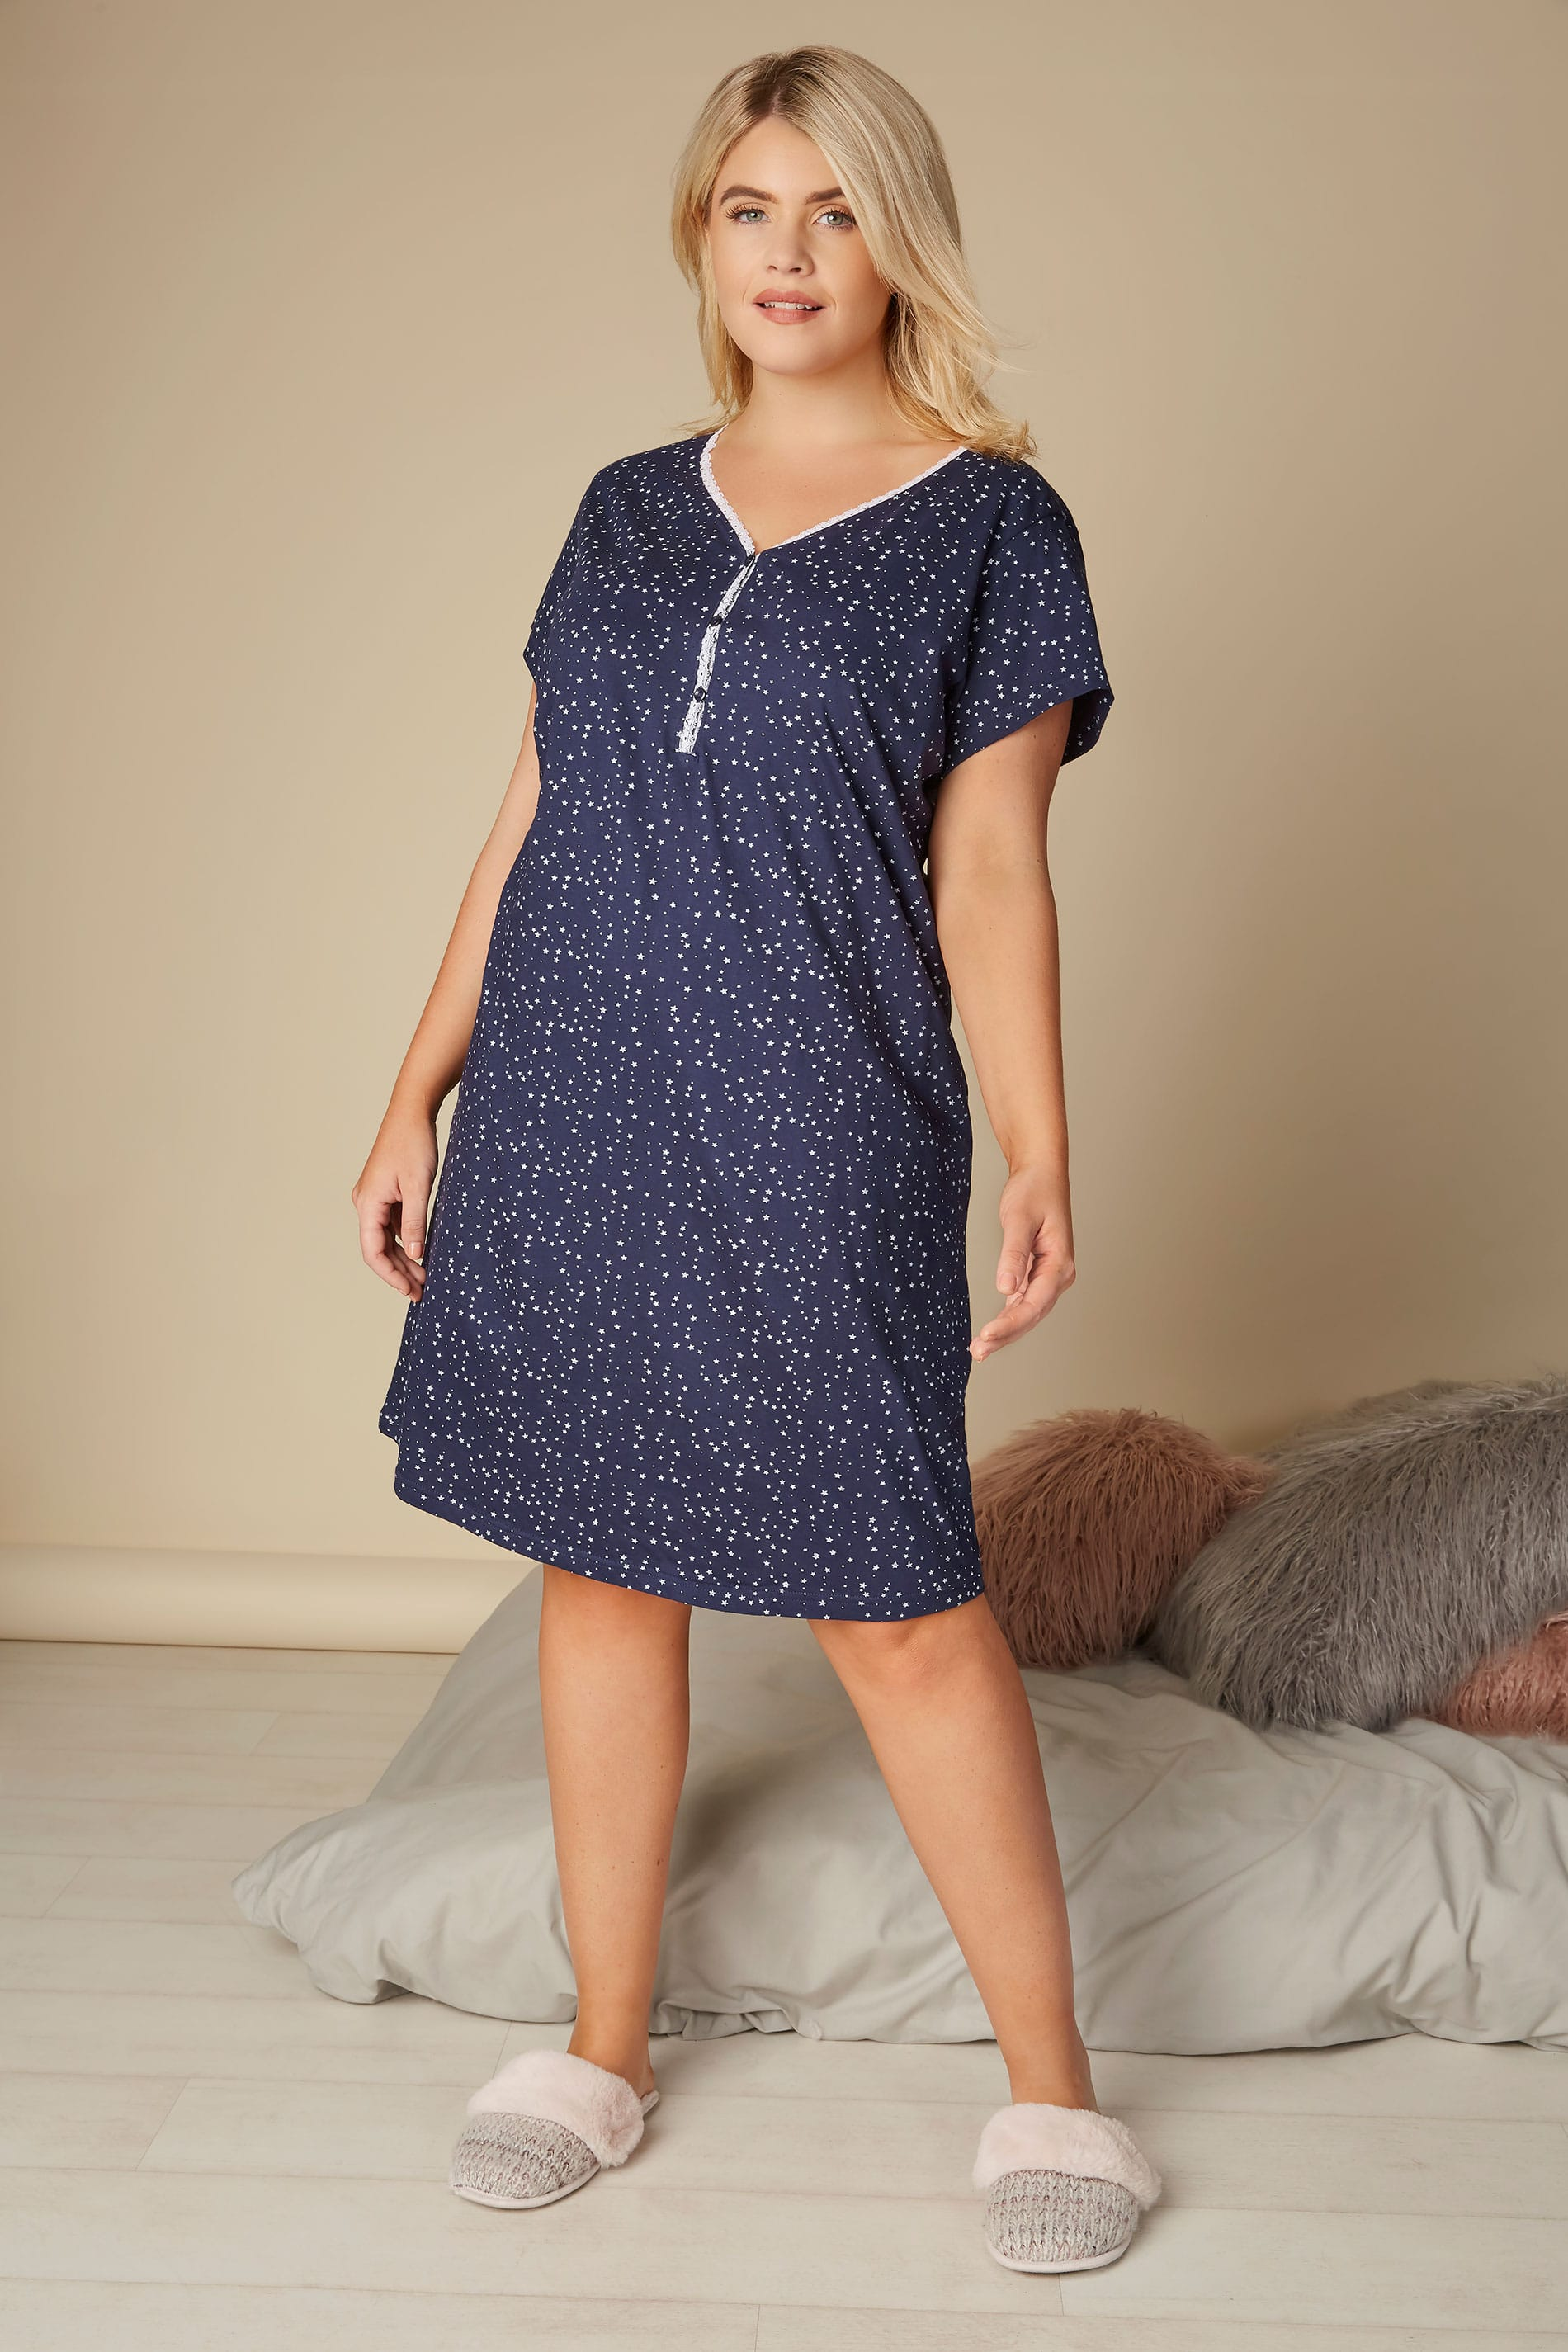 93f64801d1 Navy   White Star Print Nightdress